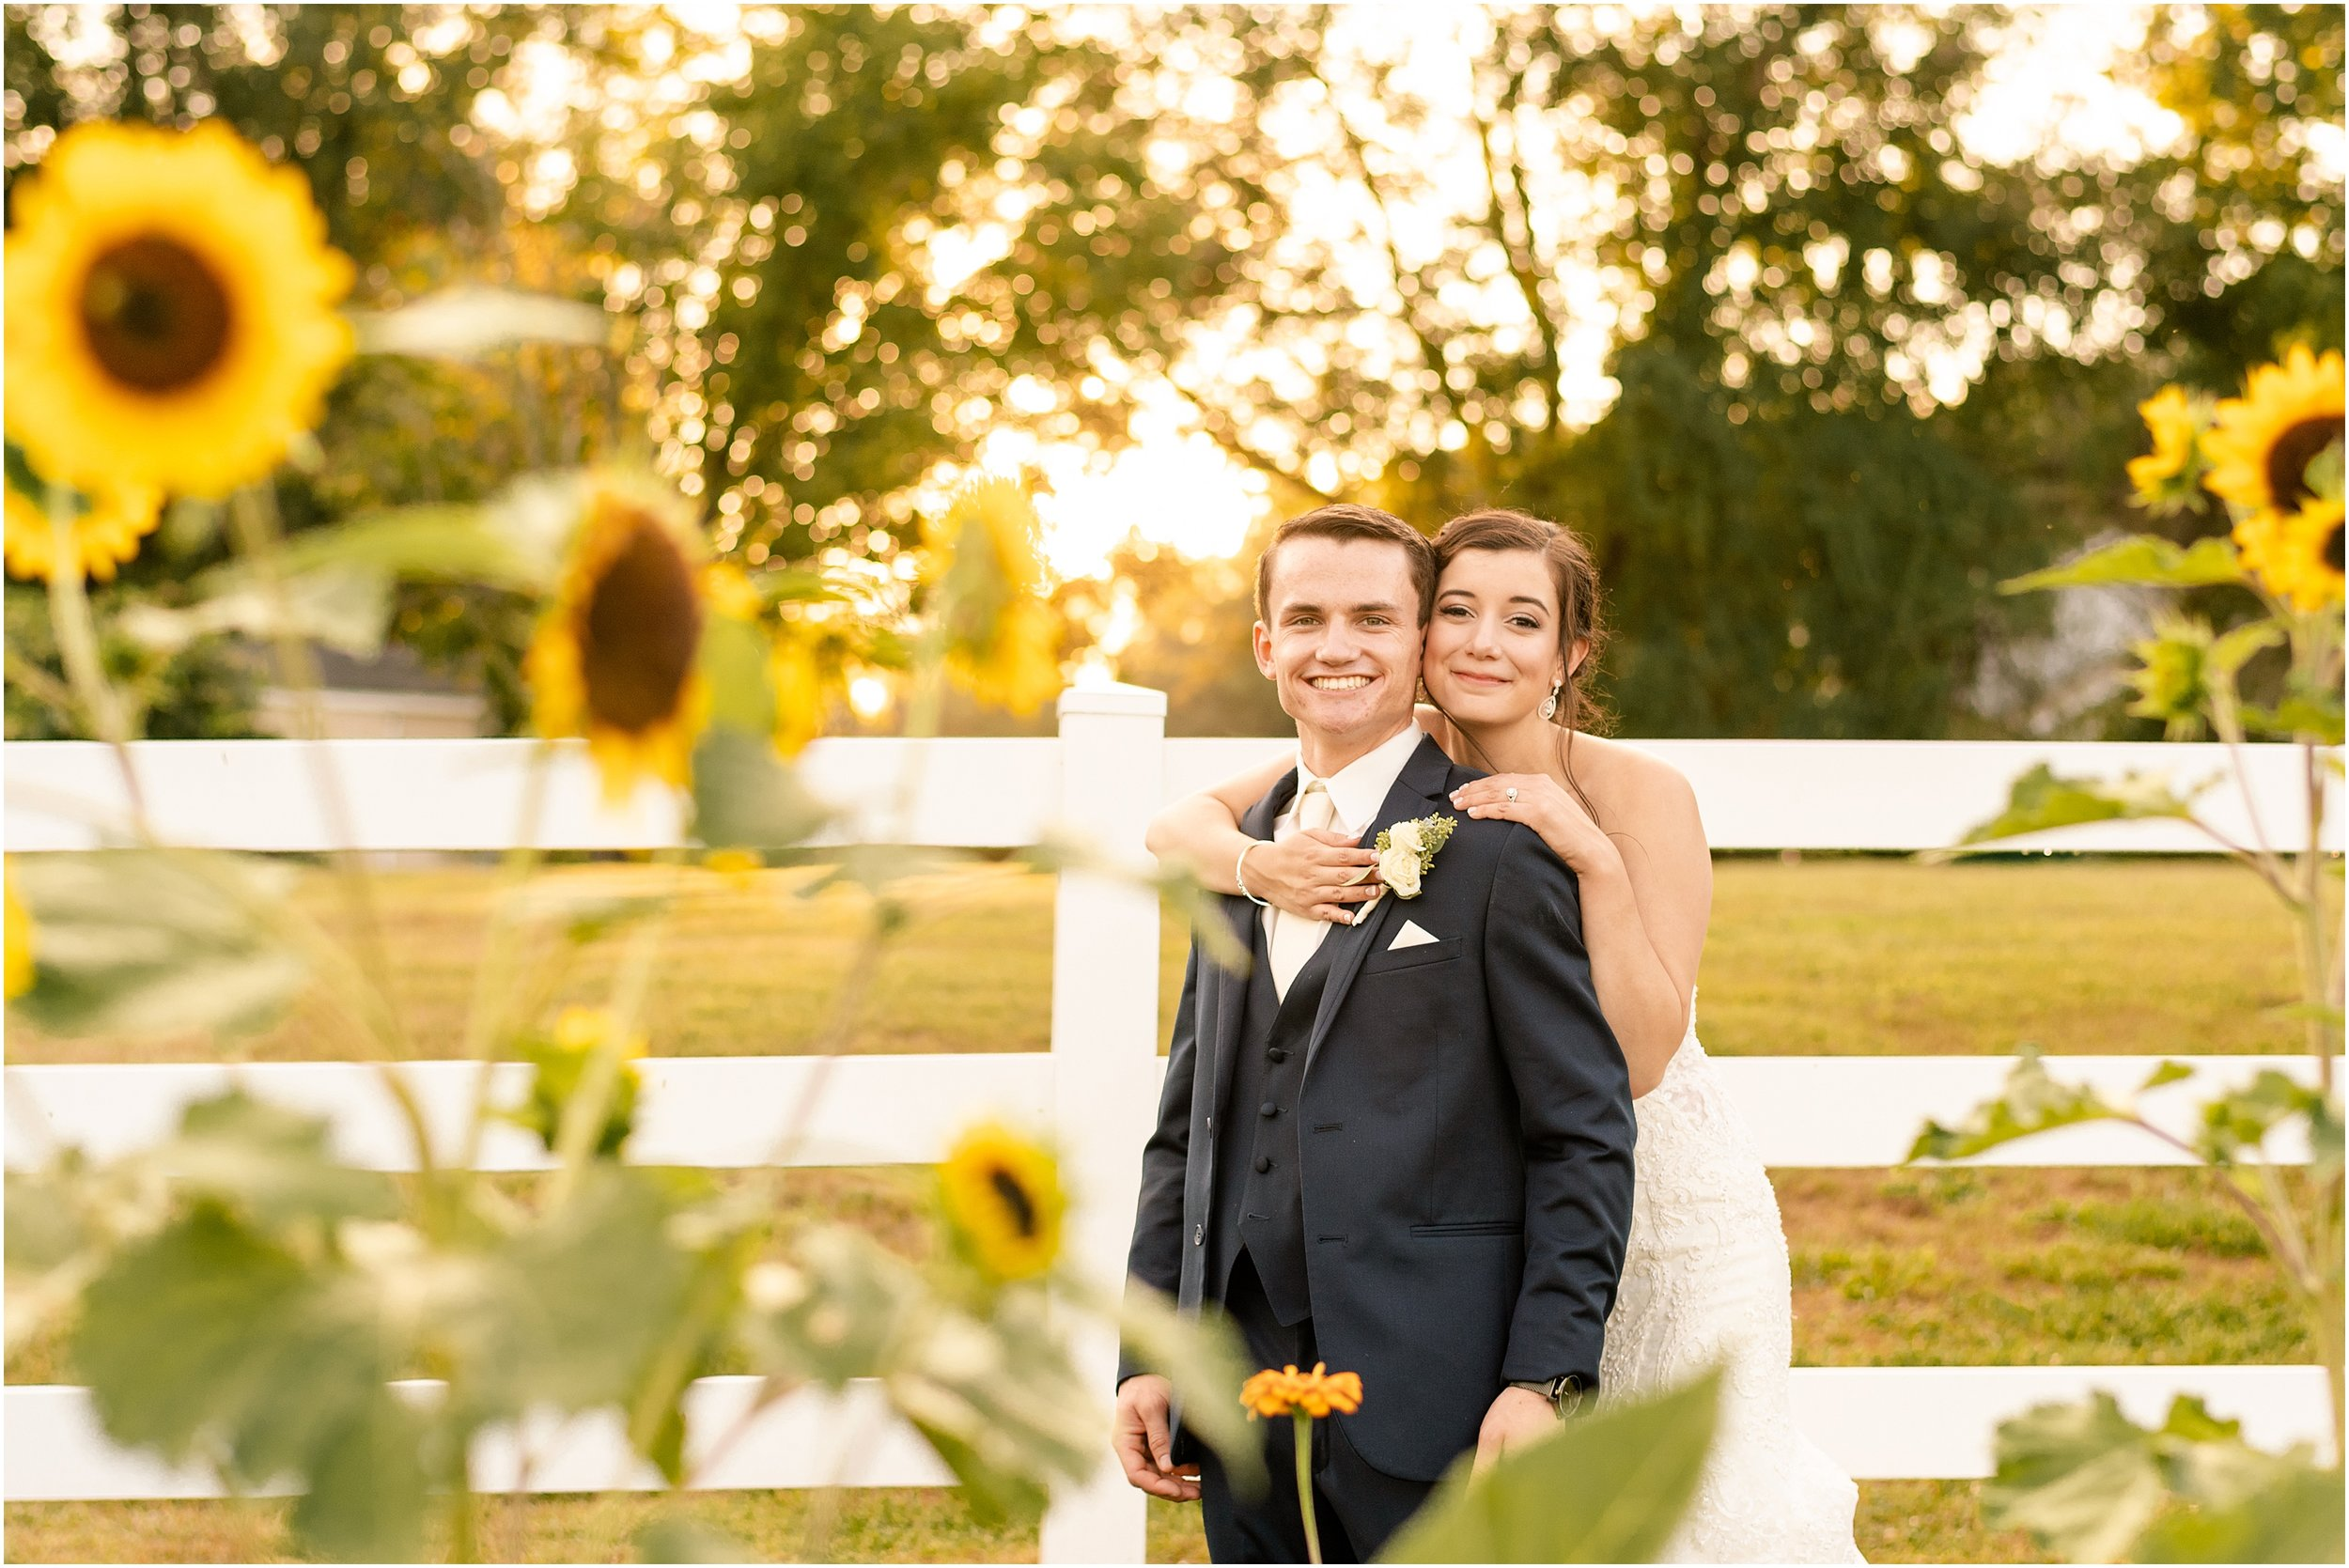 hannah leigh photography Pond View Farm Wedding White Hall MD_3682.jpg